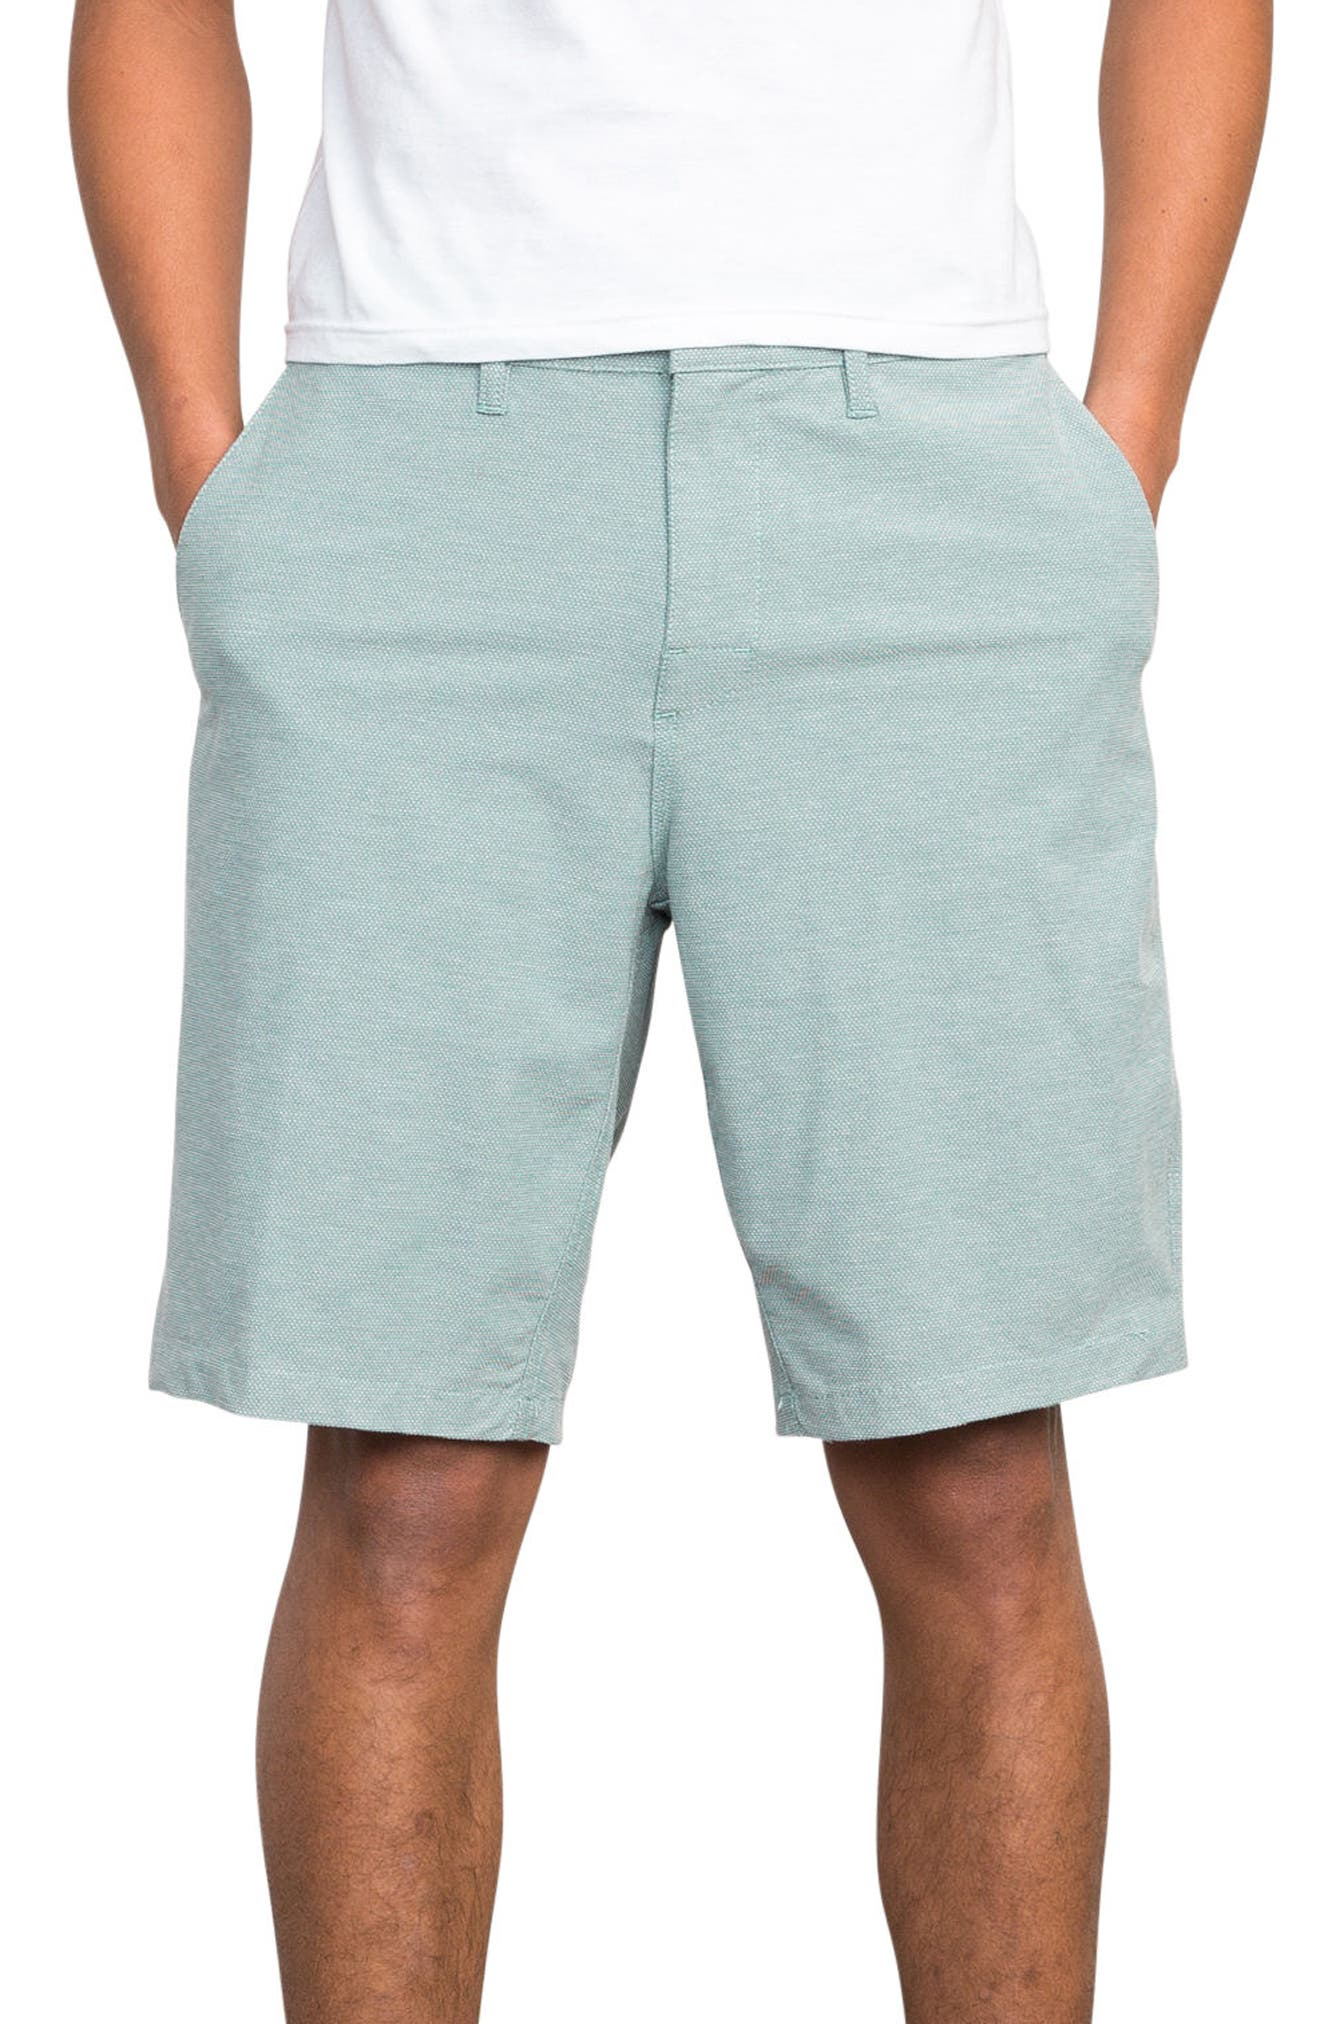 Holidaze Hybrid Shorts,                         Main,                         color, PINE TREE